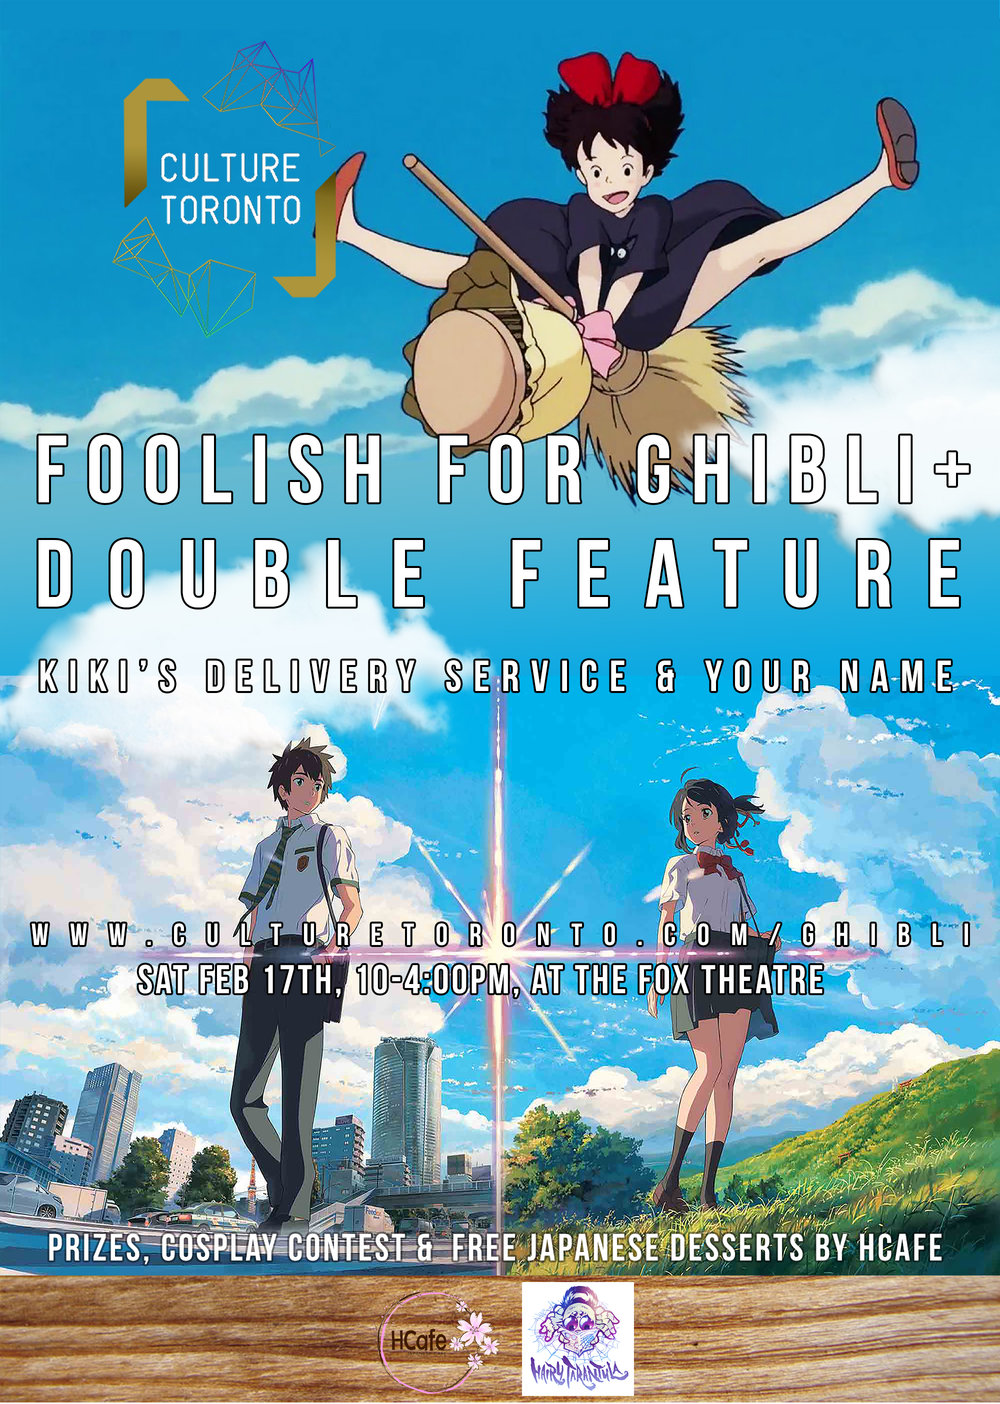 Kikis Delivery Service And Your Name Anime Music Video Foolish For Ghibli Plus Double Feature